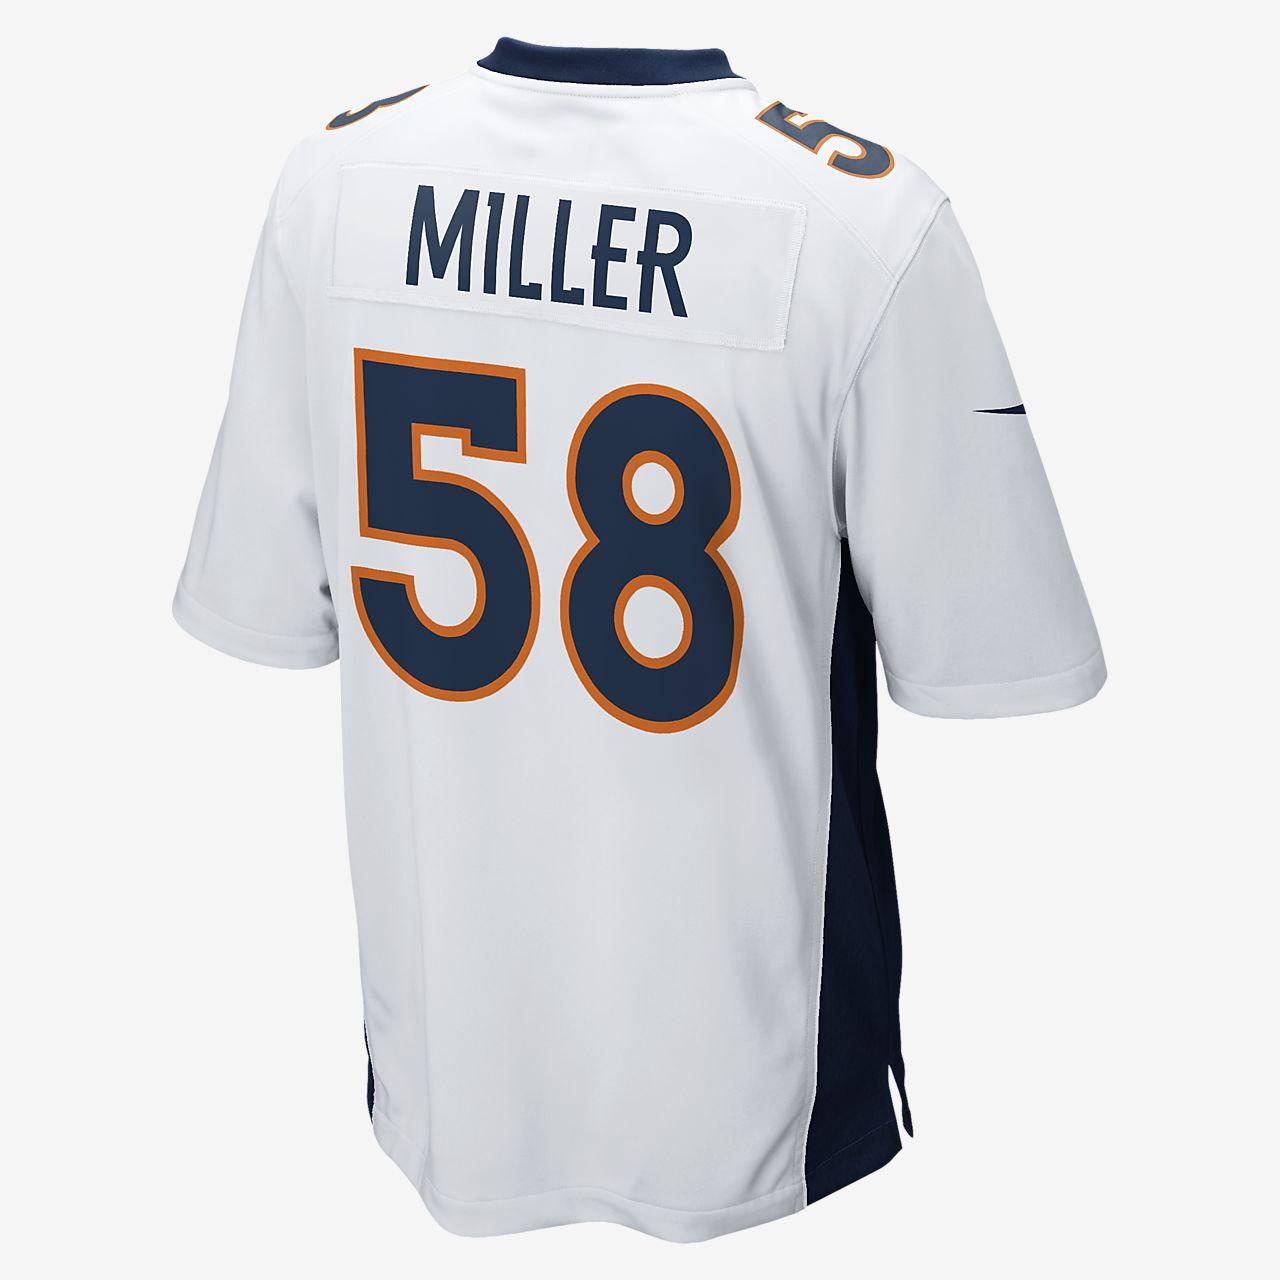 639cb5300 NFL Denver Broncos (Von Miller) Men s Game Football Jersey. Nike.com